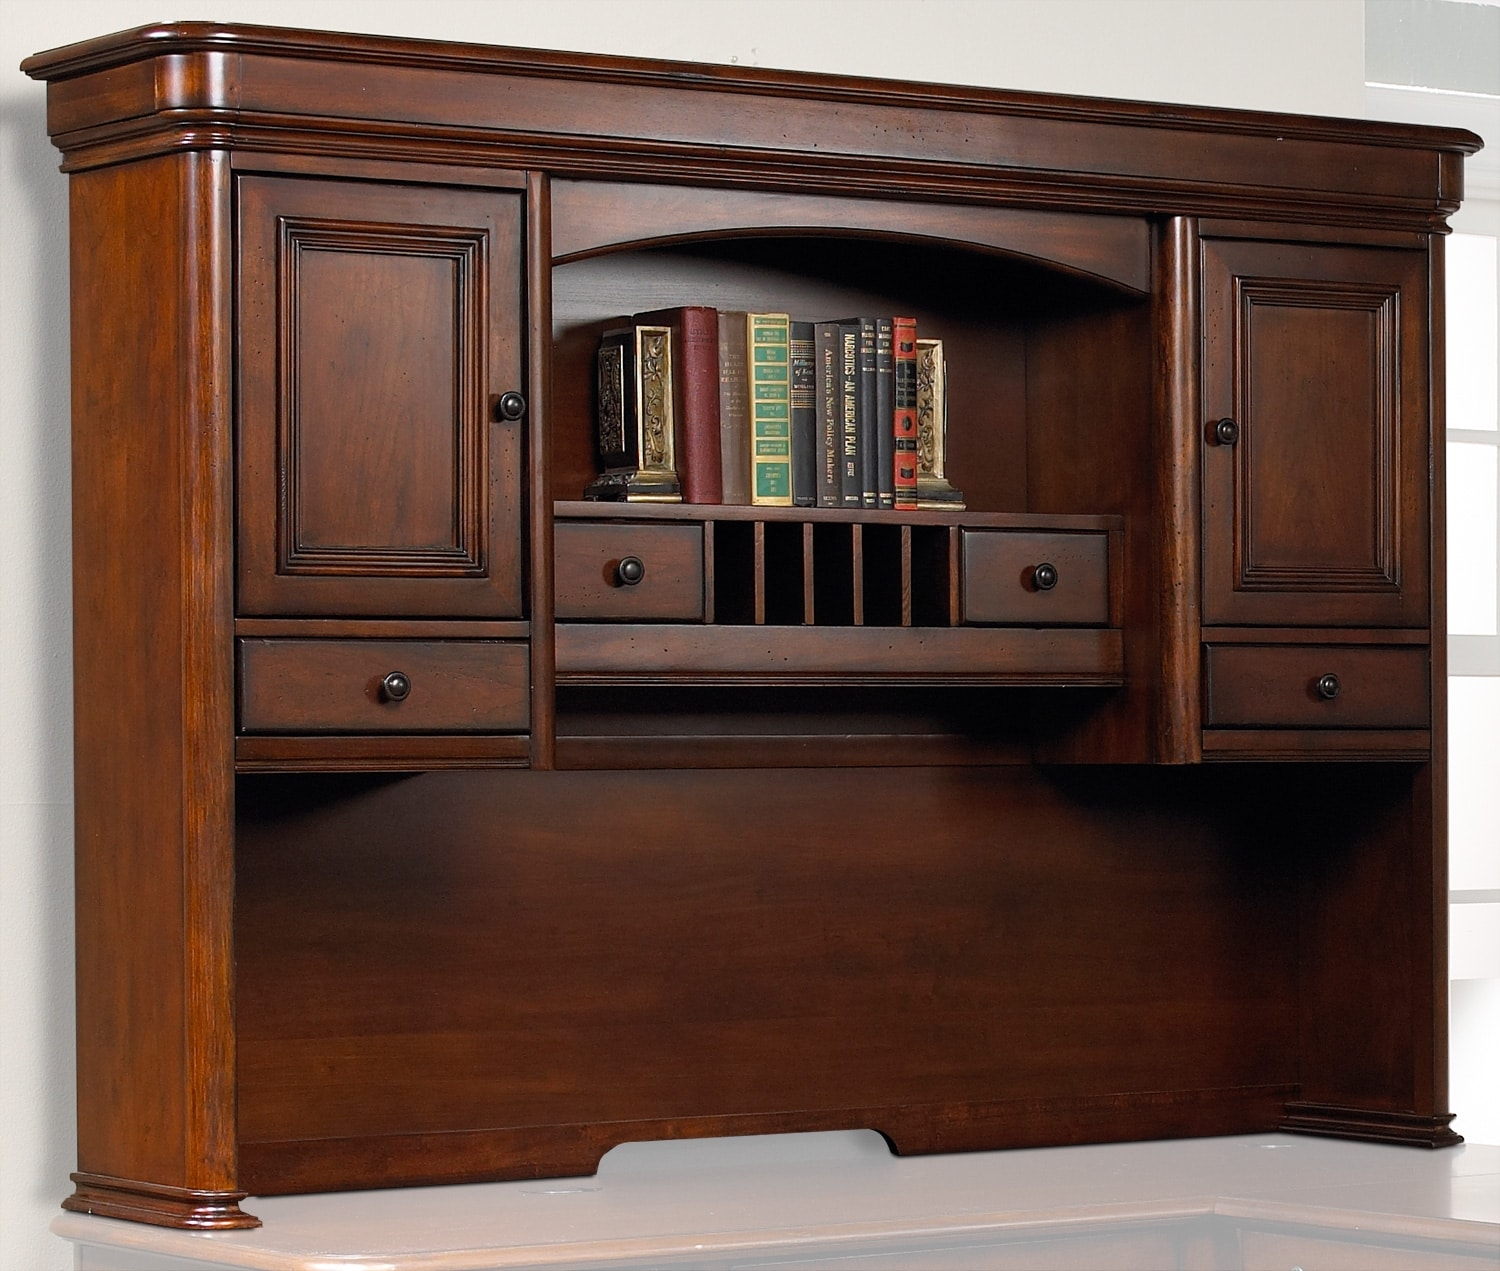 Home Office Furniture - Villa Toscana Hutch - Brown Cherry